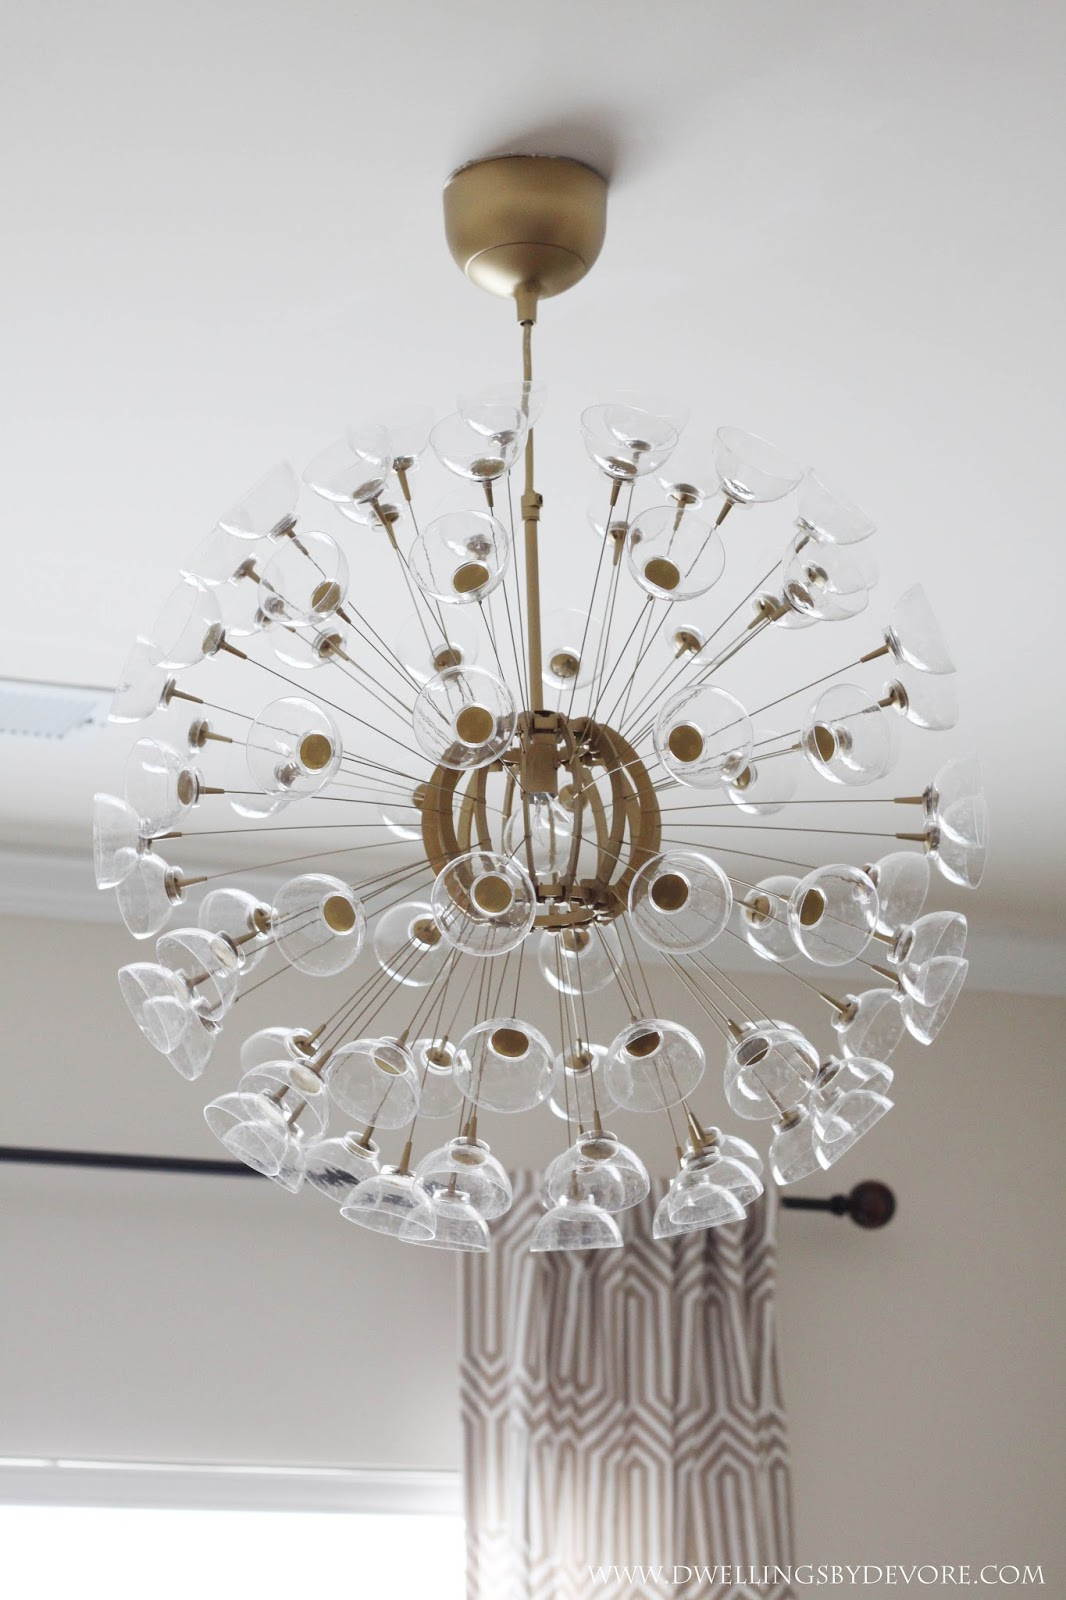 to space upgrade diy chandelier fixtures and she light chandeliers your hanging tried what